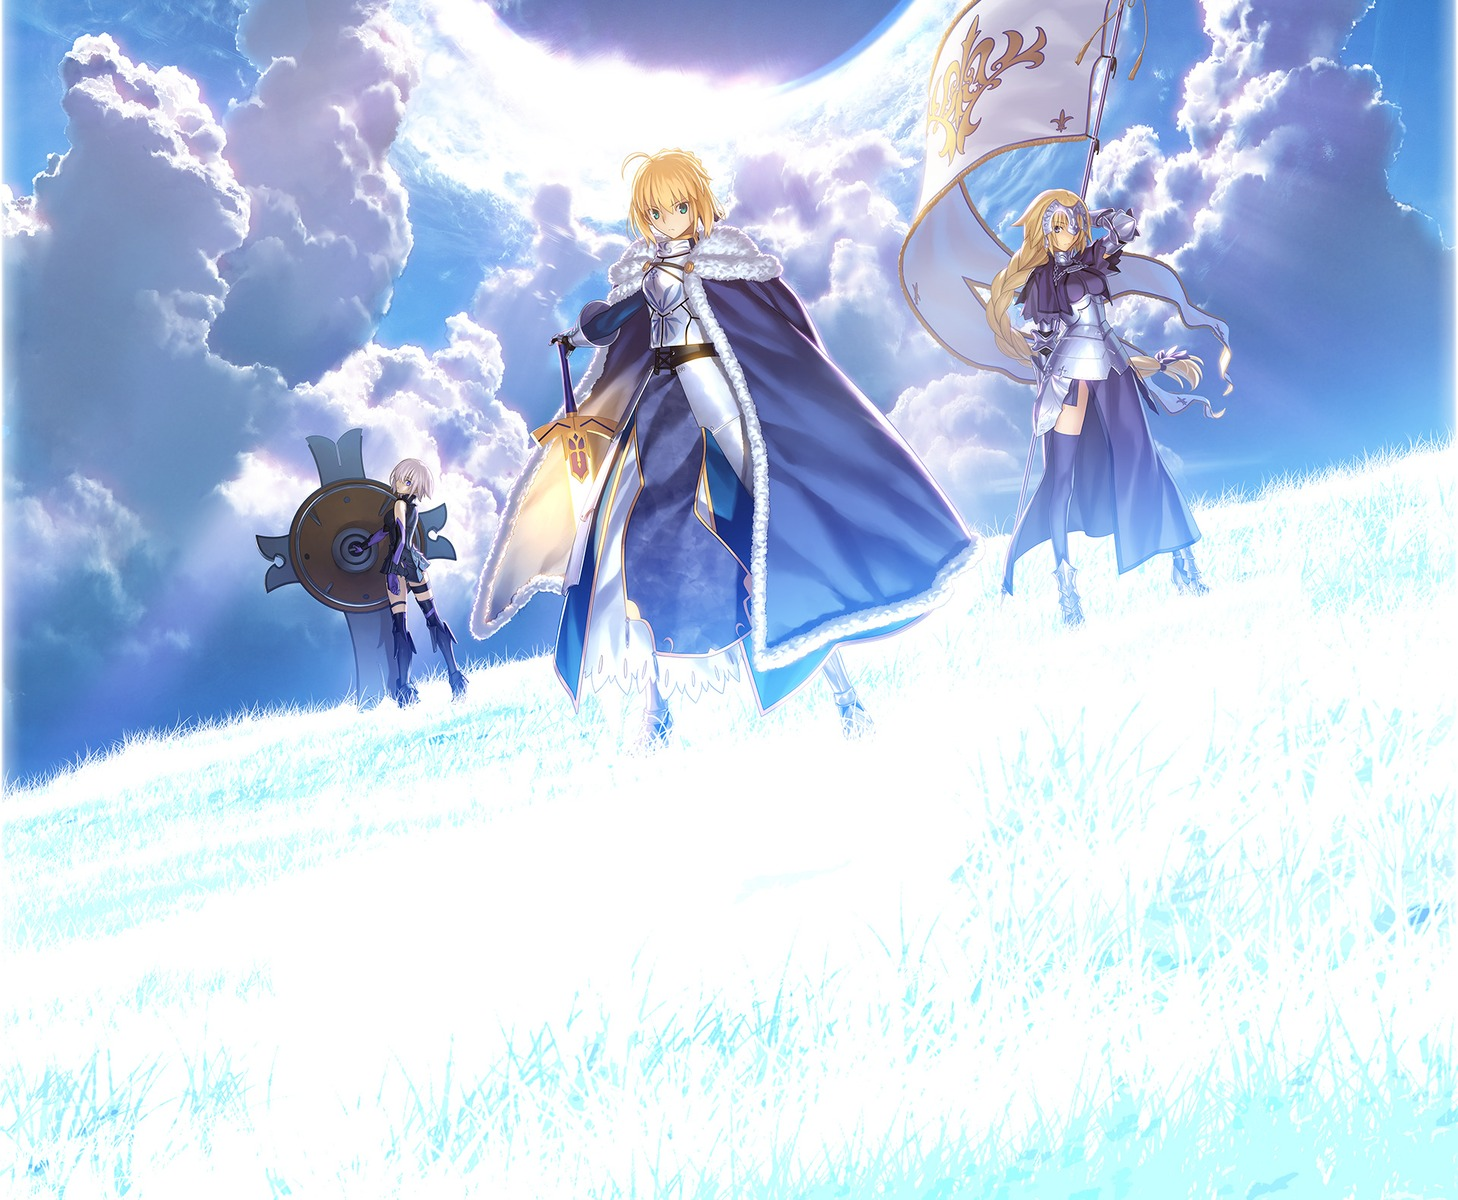 Fate Grand Order visual